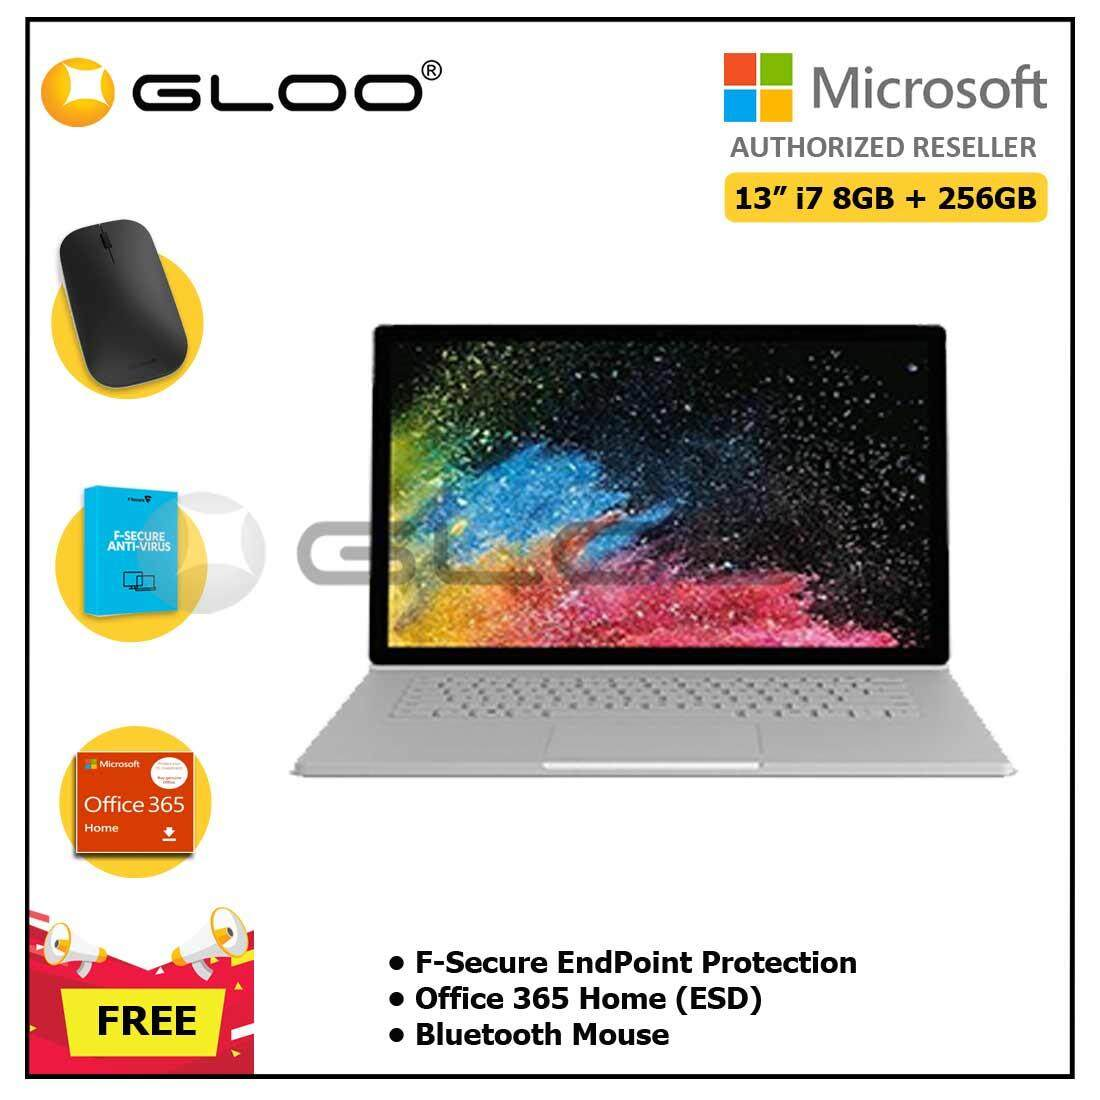 """Microsoft Surface Book 2 13"""" i7/8GB 256GB + F-Secure EndPoint Protection + Office 365 Home ESD + Bluetooth Mouse"""